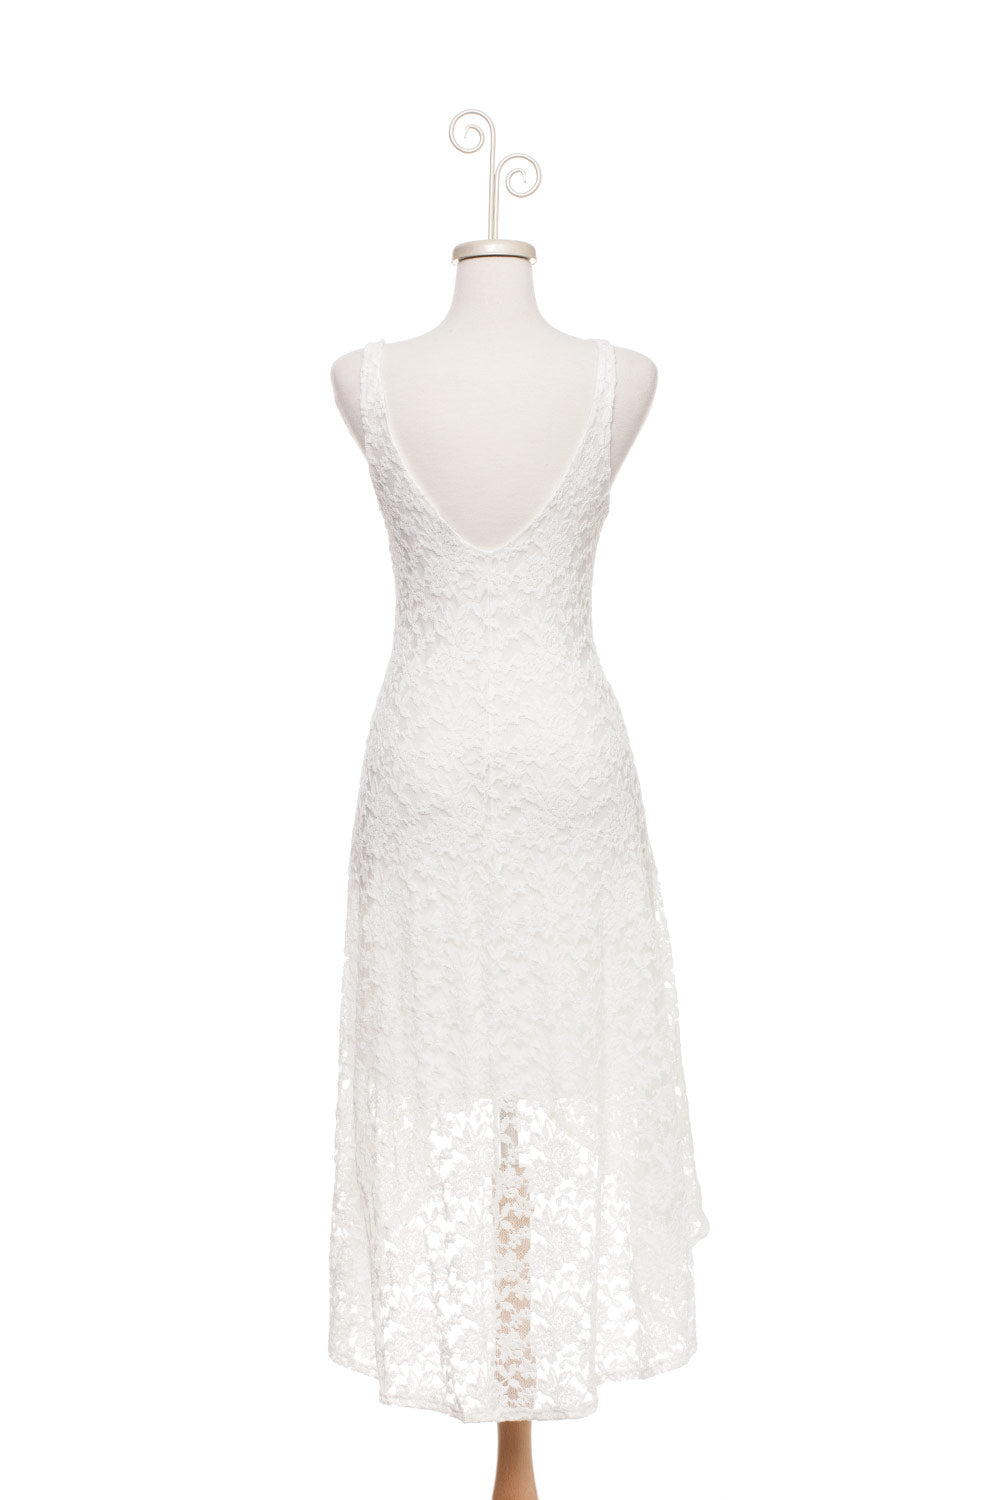 Type 1 Antique Lace Dress